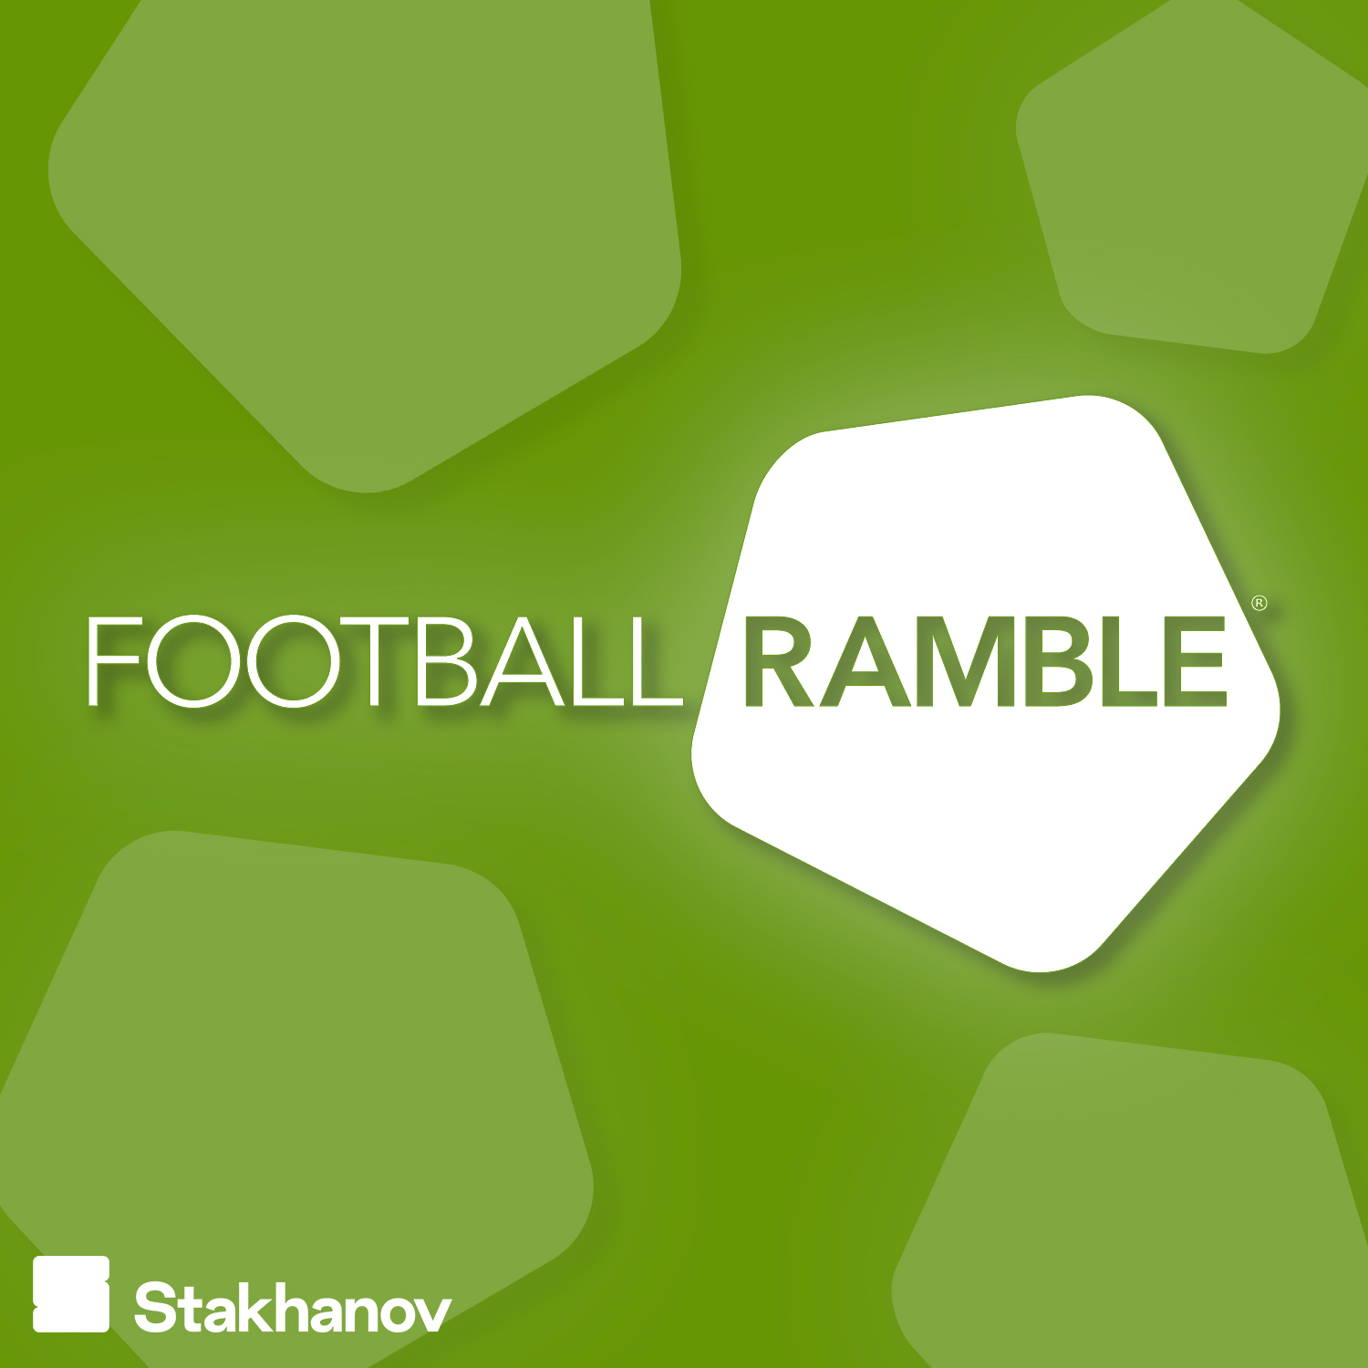 The artwork for the Football Ramble podcast.